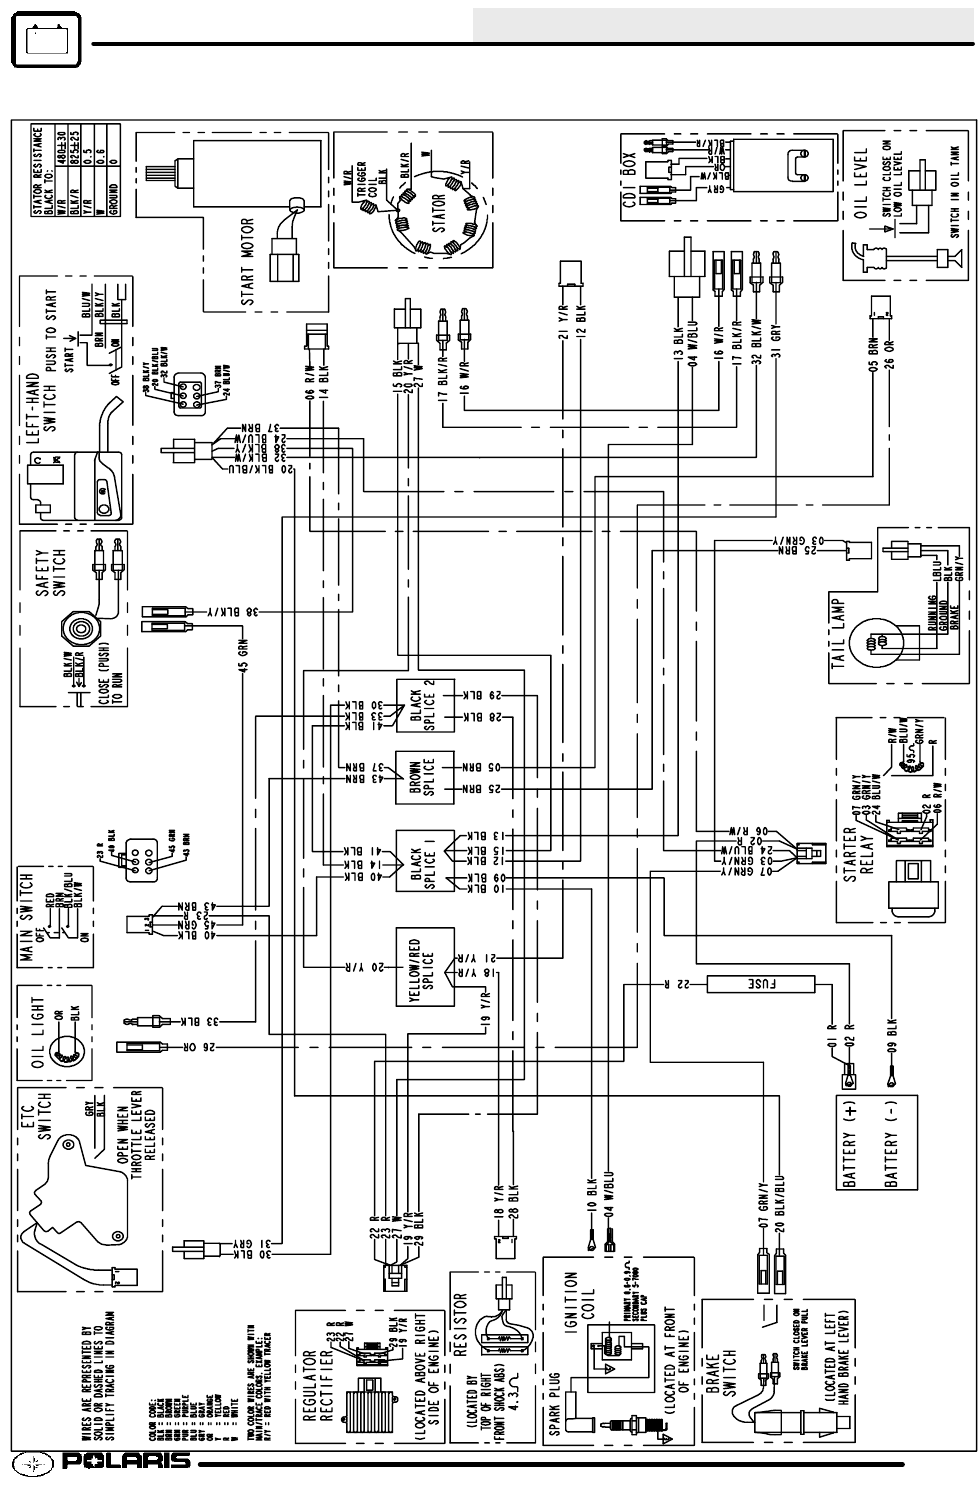 medium resolution of polaris outlaw 525 wiring diagram wiring diagram todays 1997 polaris sportsman 500 wiring diagram 2002 sportsman 90 wiring diagram